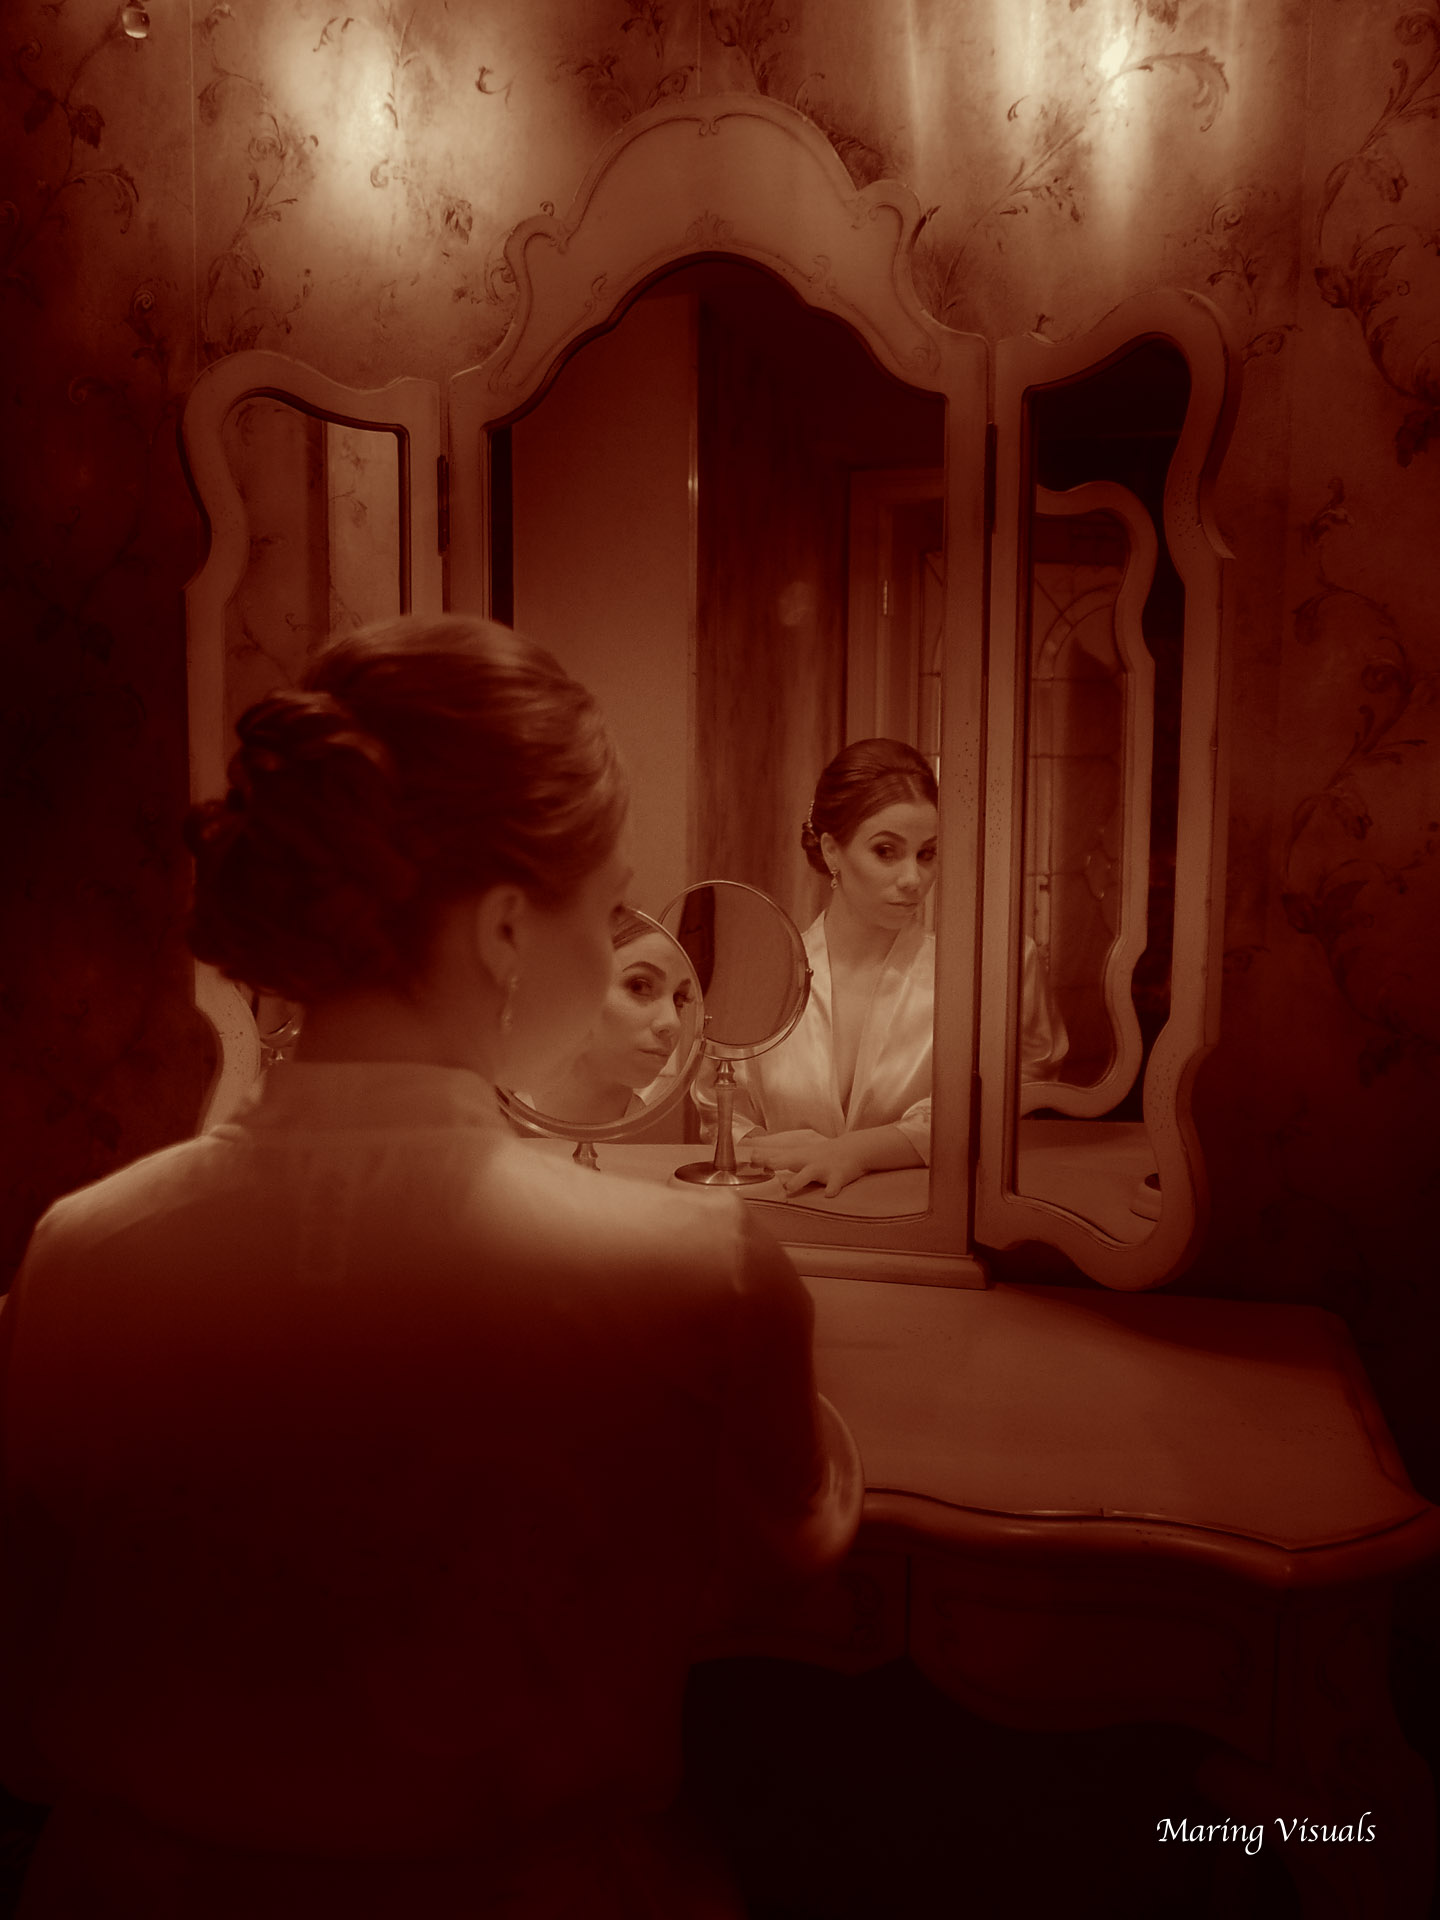 Mirror Image of the Bride